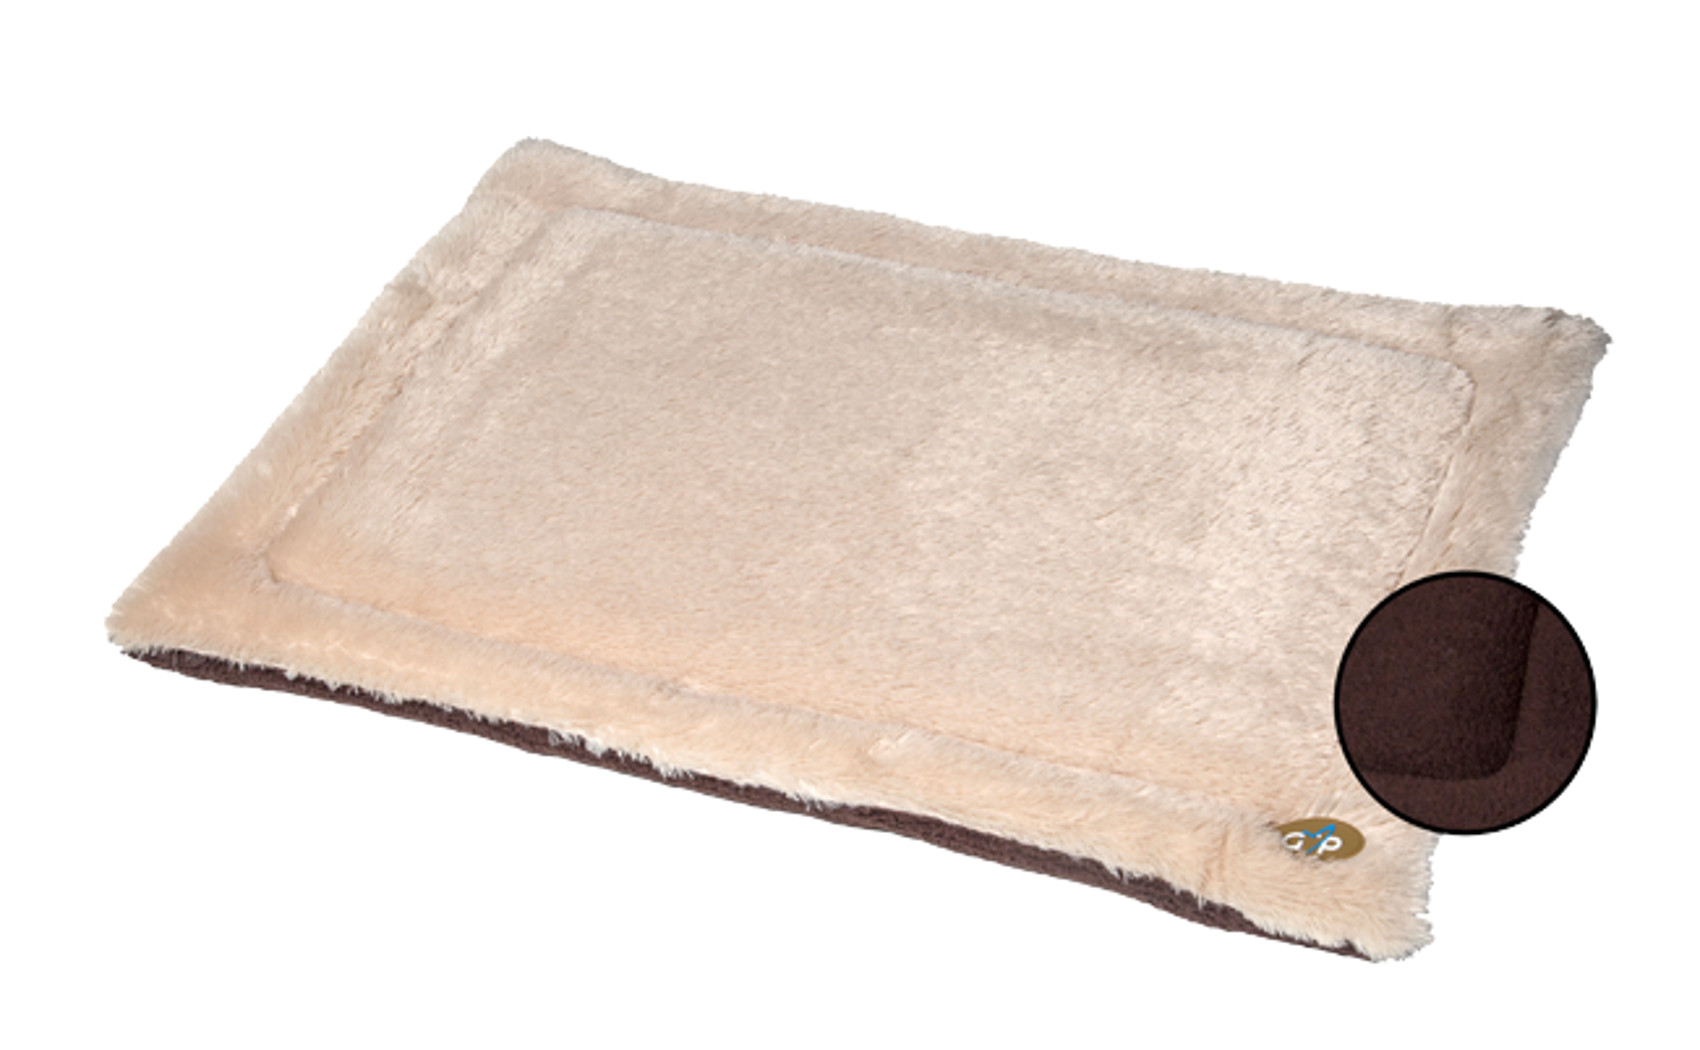 pad crate washable charcoal supply nap products bed fleece pet downtown and comfort mat mats